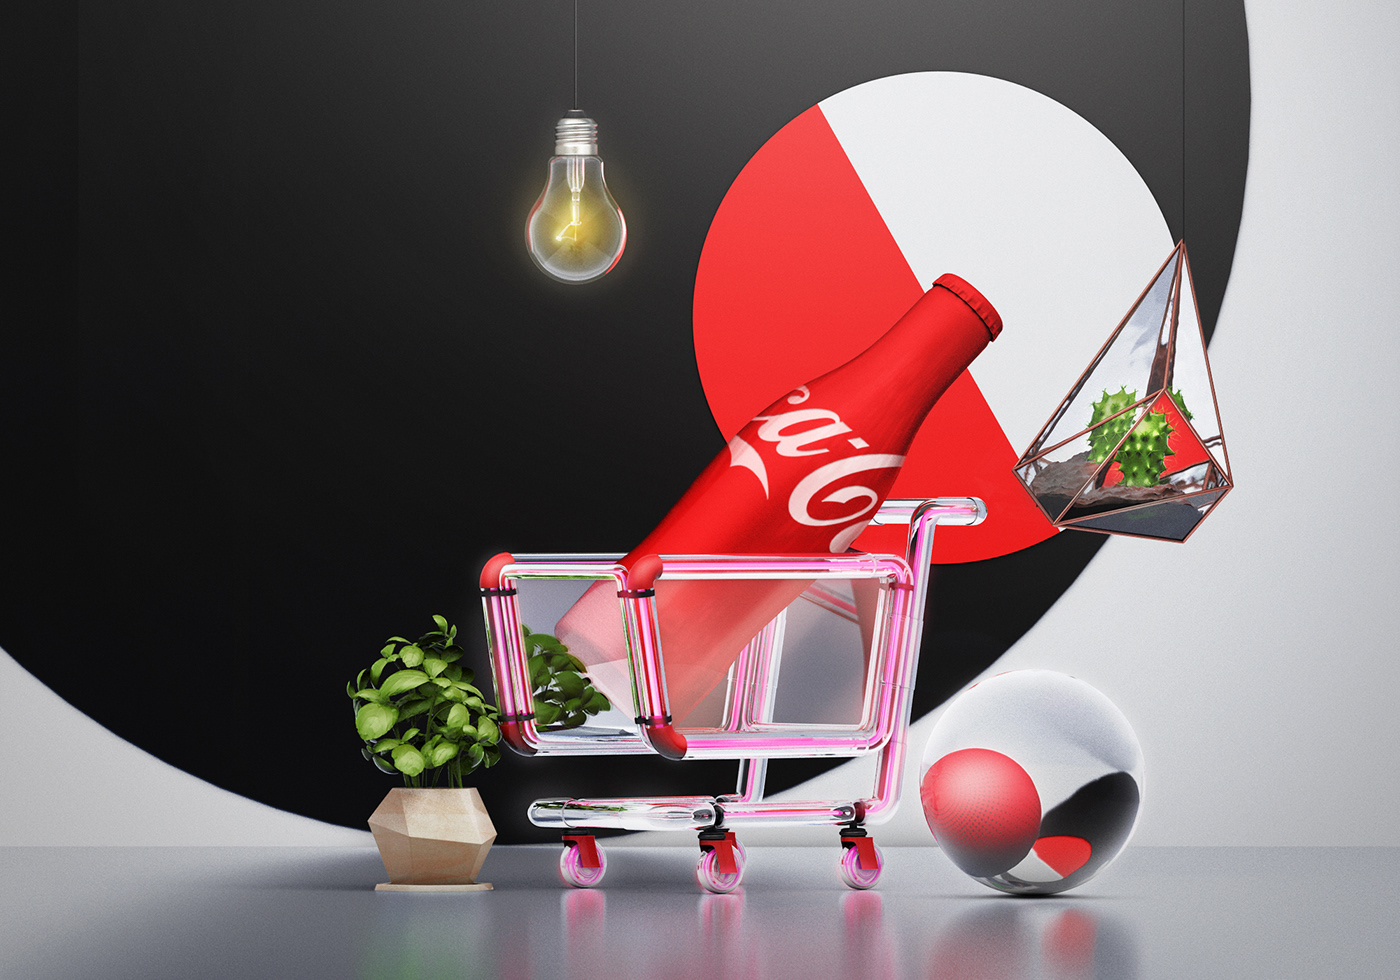 cocacola coke keyvisuals cap bottle backgrounds surreal abstract mood beverage